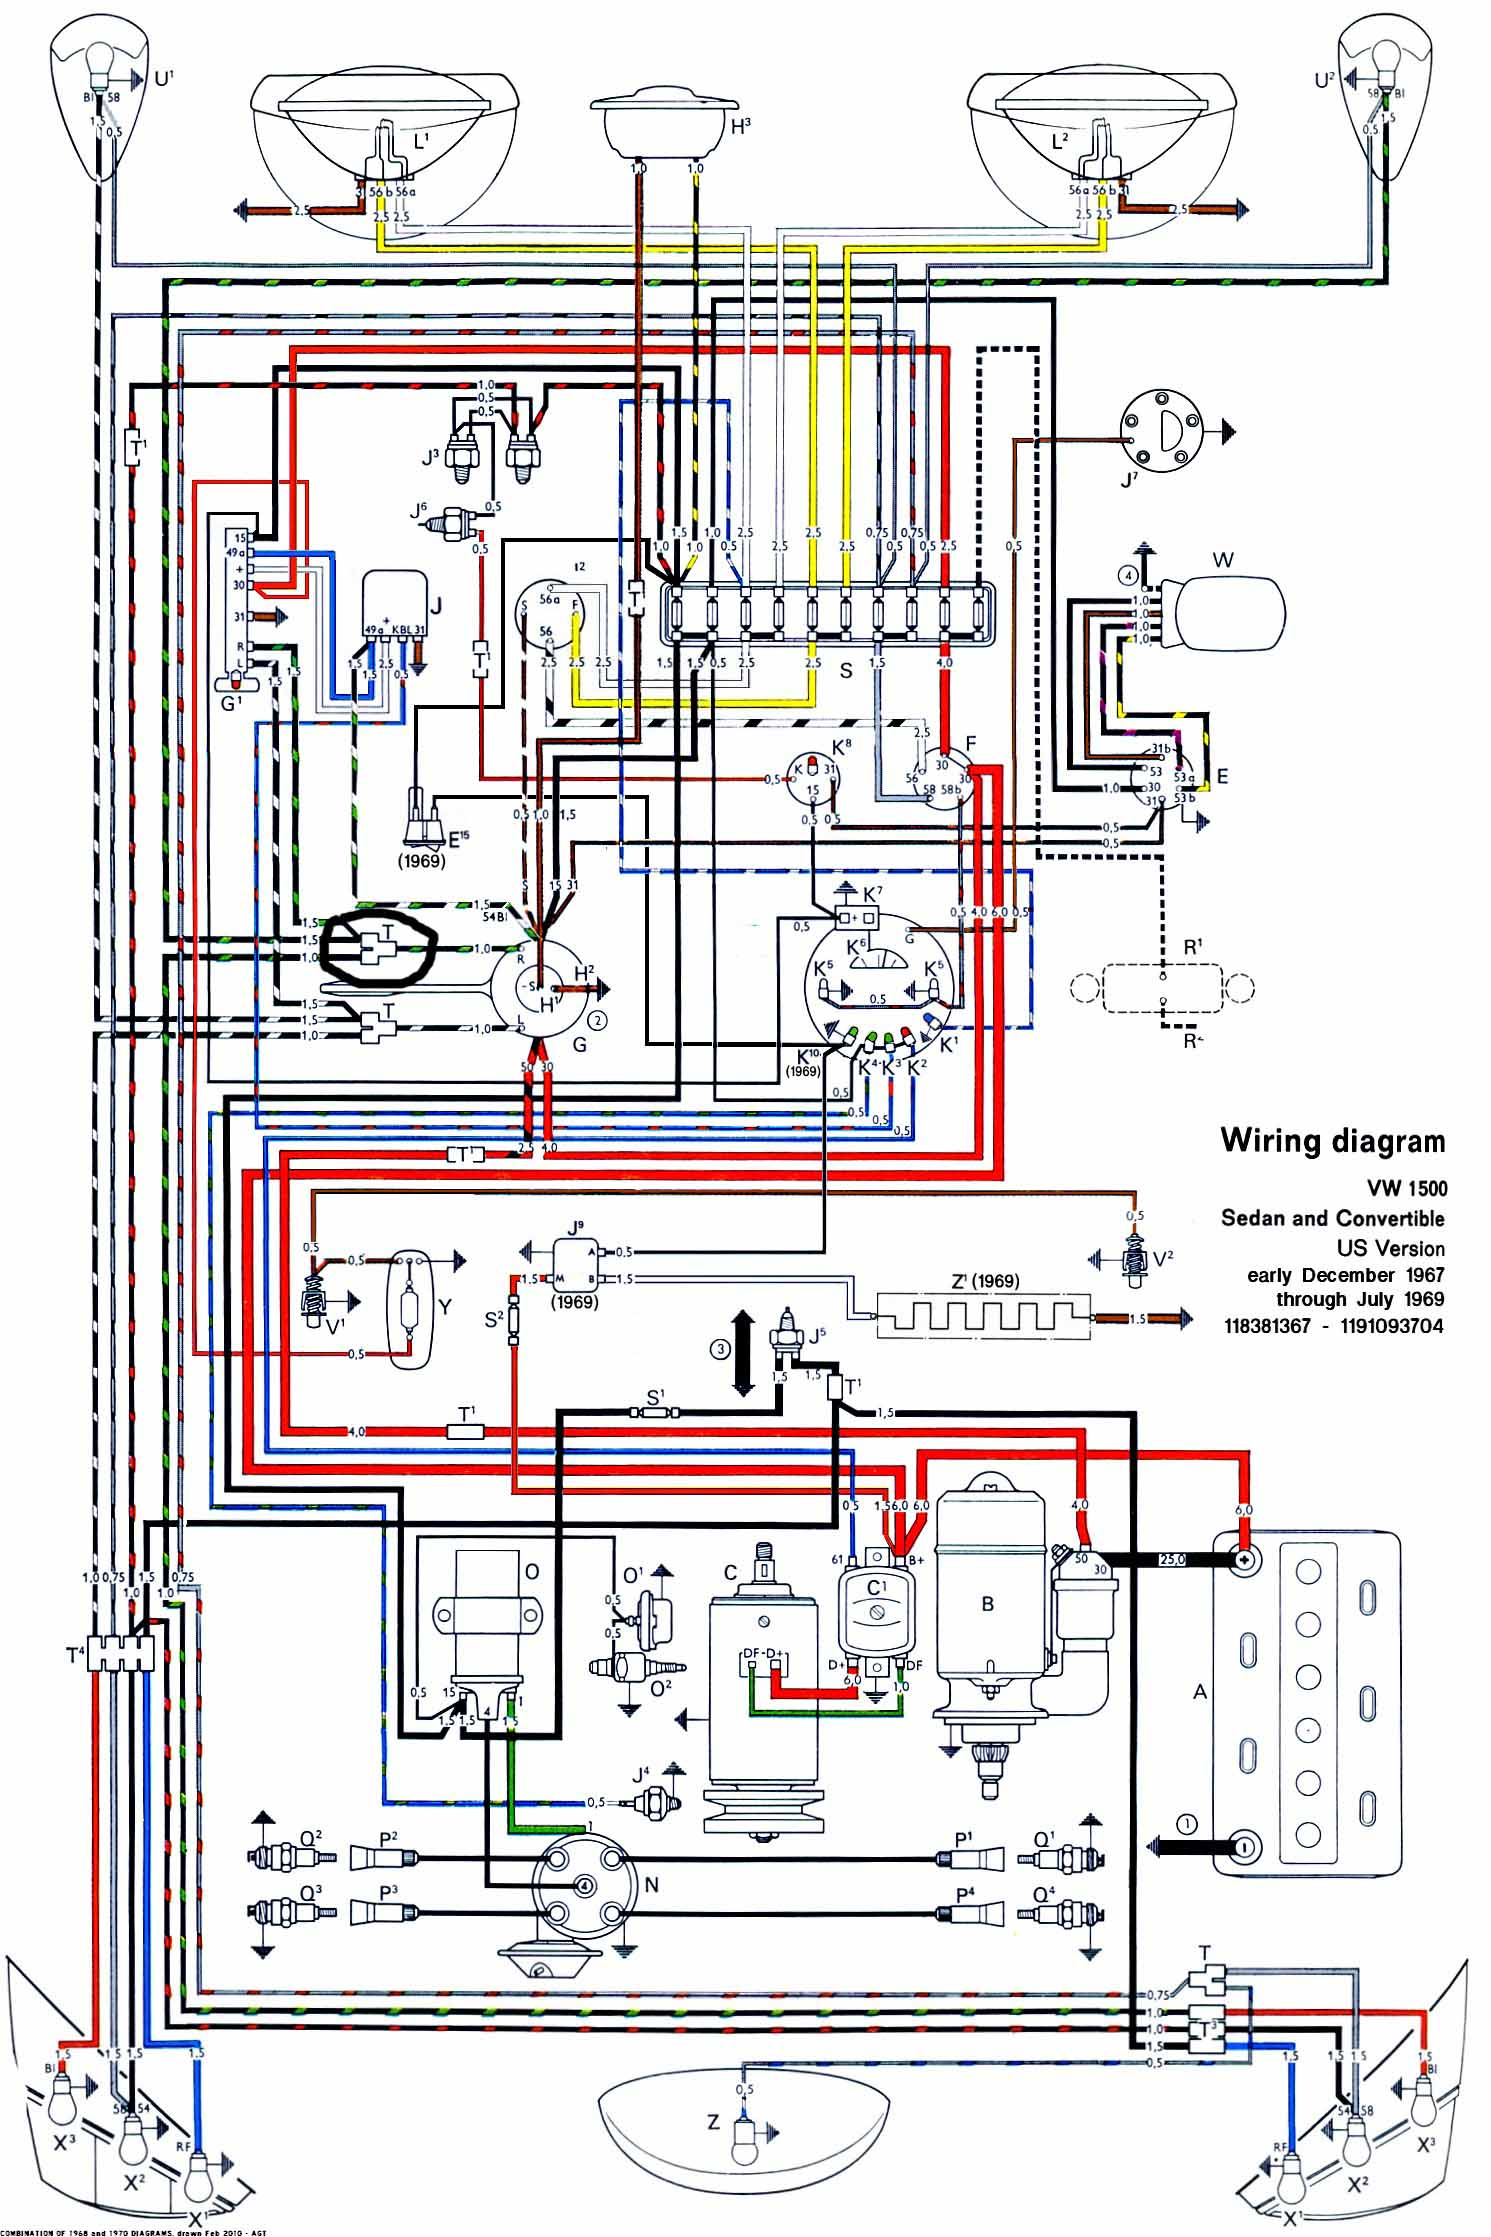 Wiring Diagram For 1971 Vw Beetle ndash The Wiring Diagram